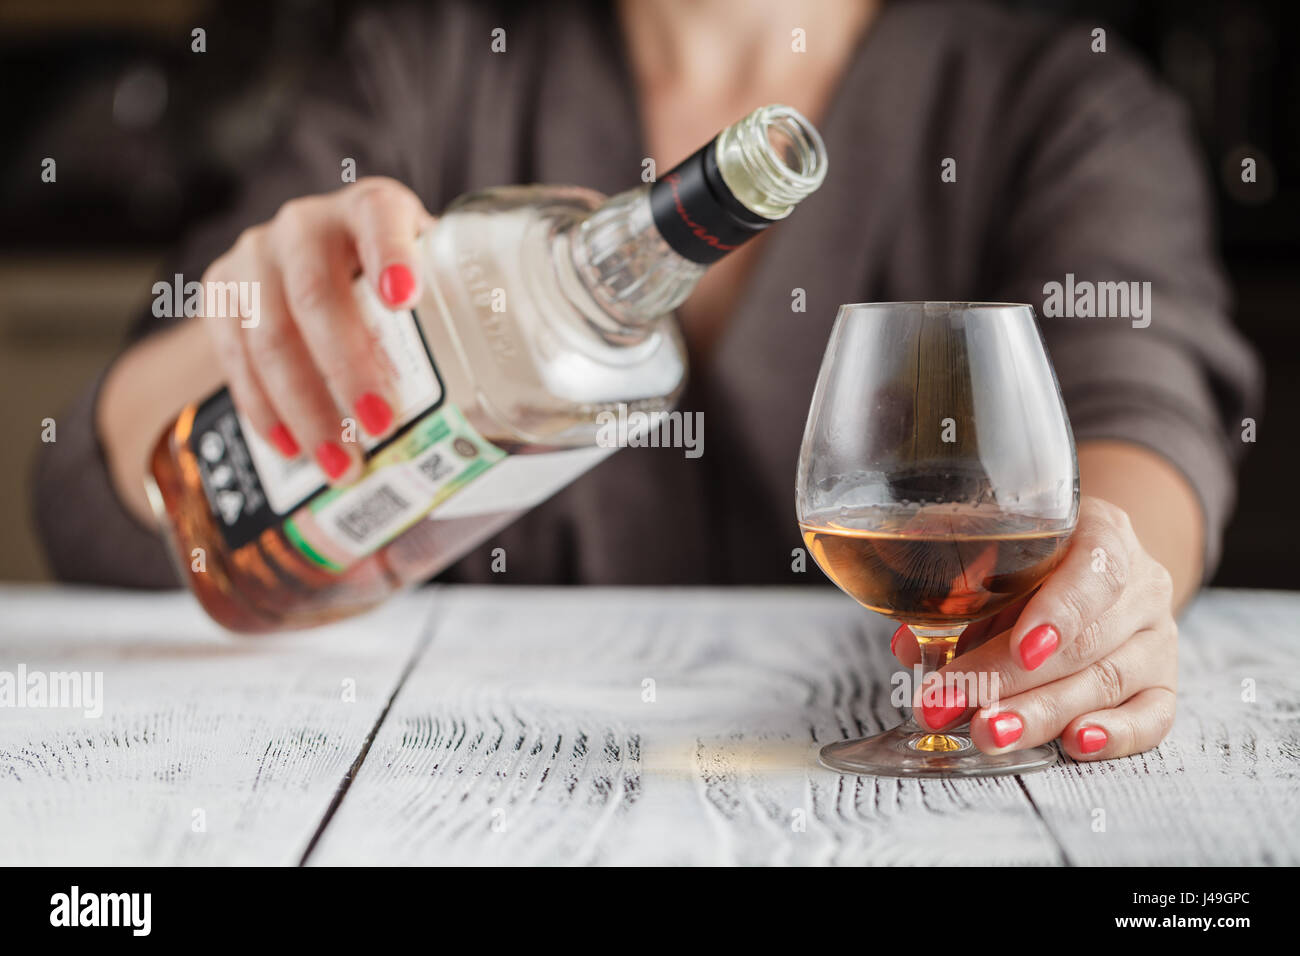 Lonely and thirsty - Stock Image